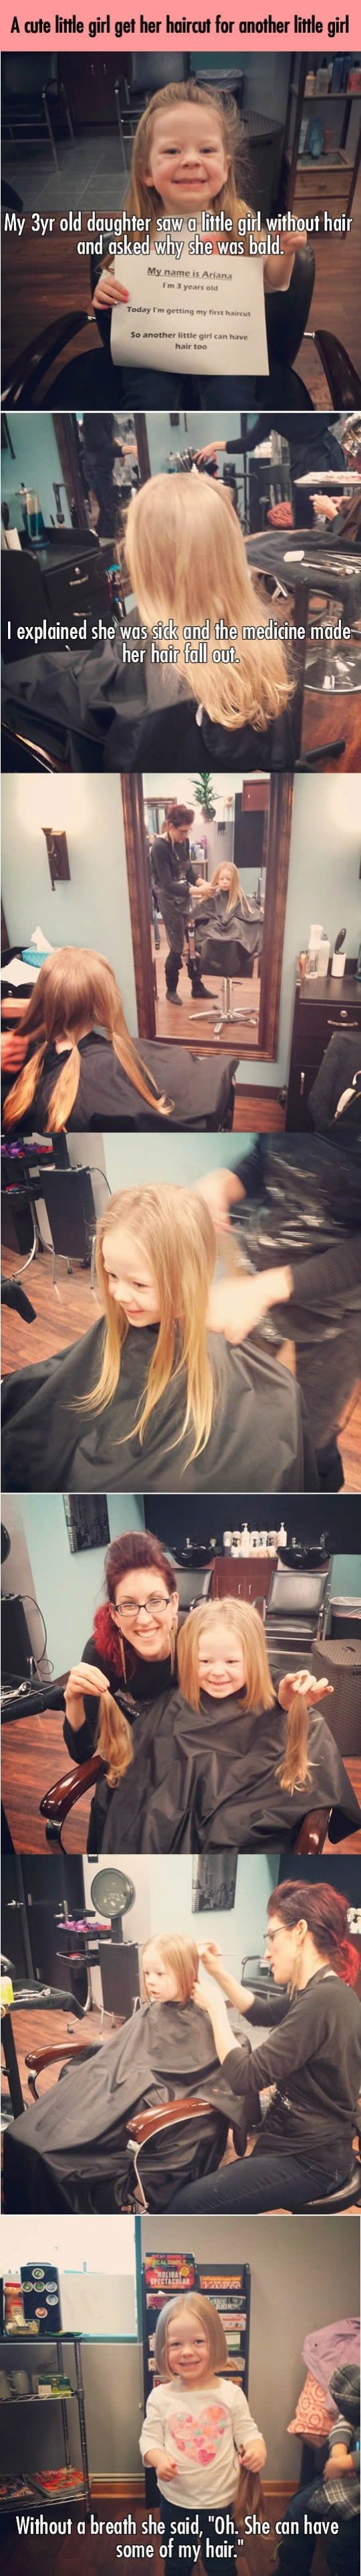 3 Year Old Girl Cuts Her hair To Give To A Kid With Cancer kids people amazing cancer story children interesting facts stories heart warming good people